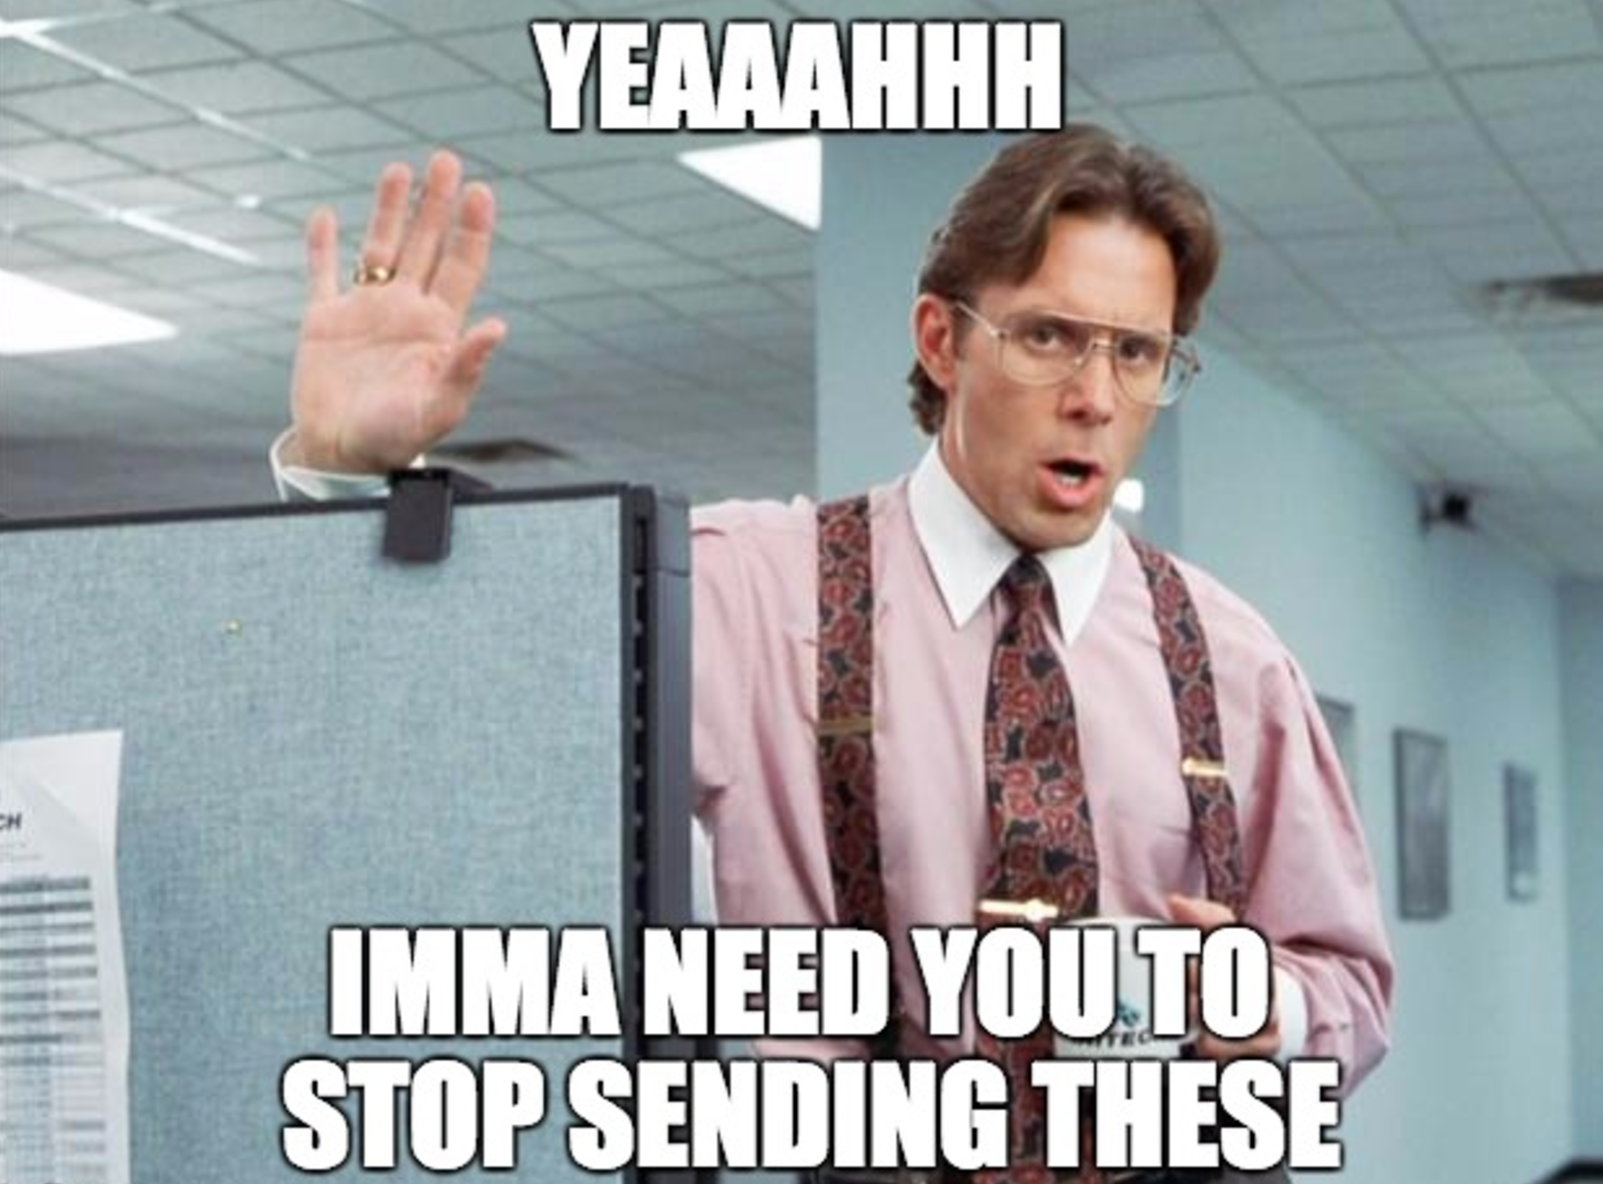 meme-office-space-yeaaahhh-imma-need-you-to-stop-sending-these